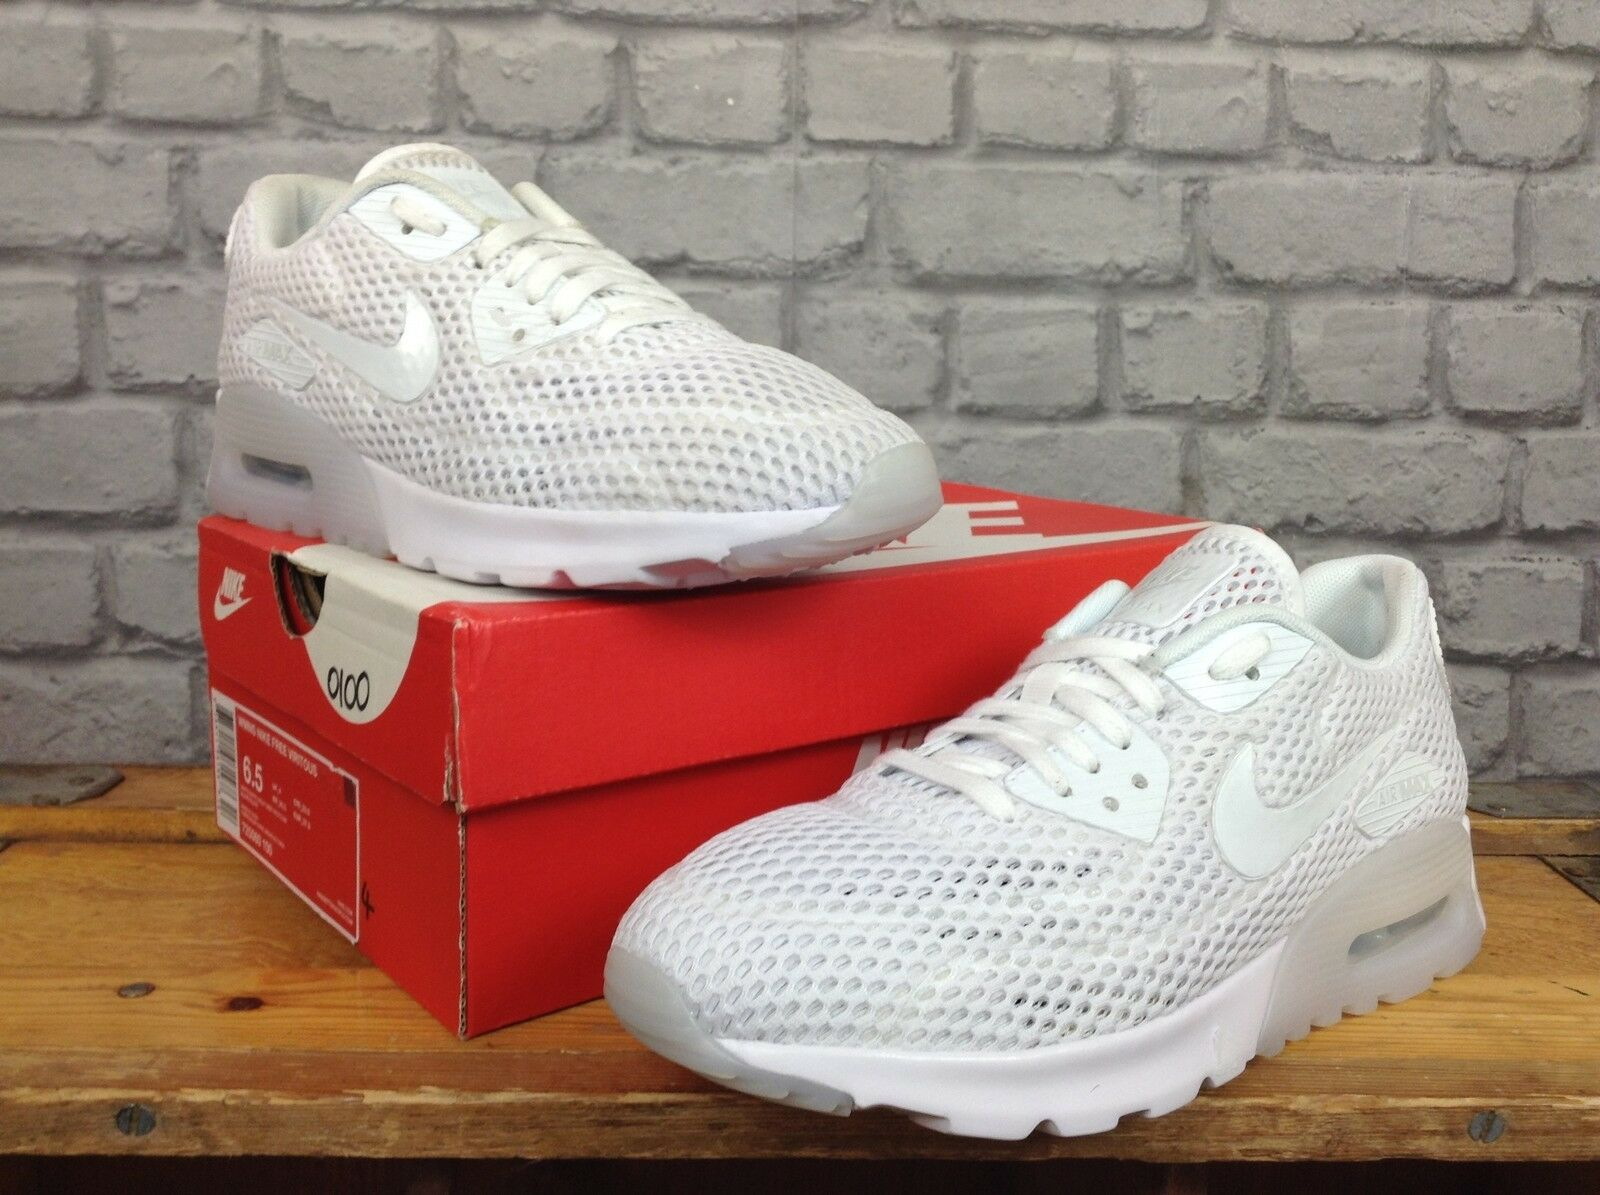 NIKE LADIES5.5 EU 39 blanc PLATINUM AIR MAX 90 ULTRA BREATHE TRAINERS